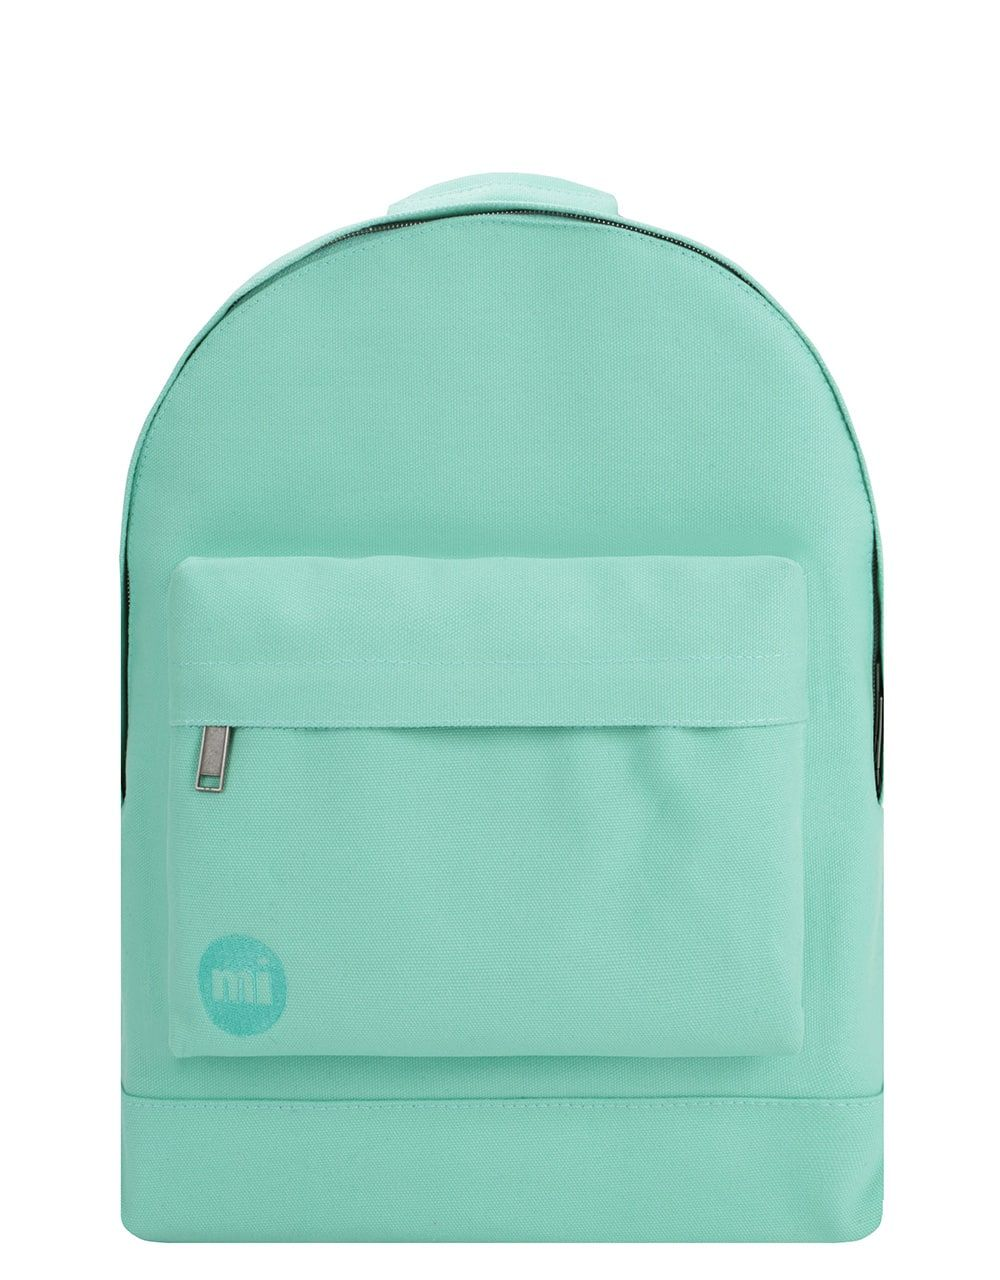 306f4f98646 Buy Mi-Pac Backpack - Canvas Mint from Mi-Pac: The Mi-Pac Canvas ...